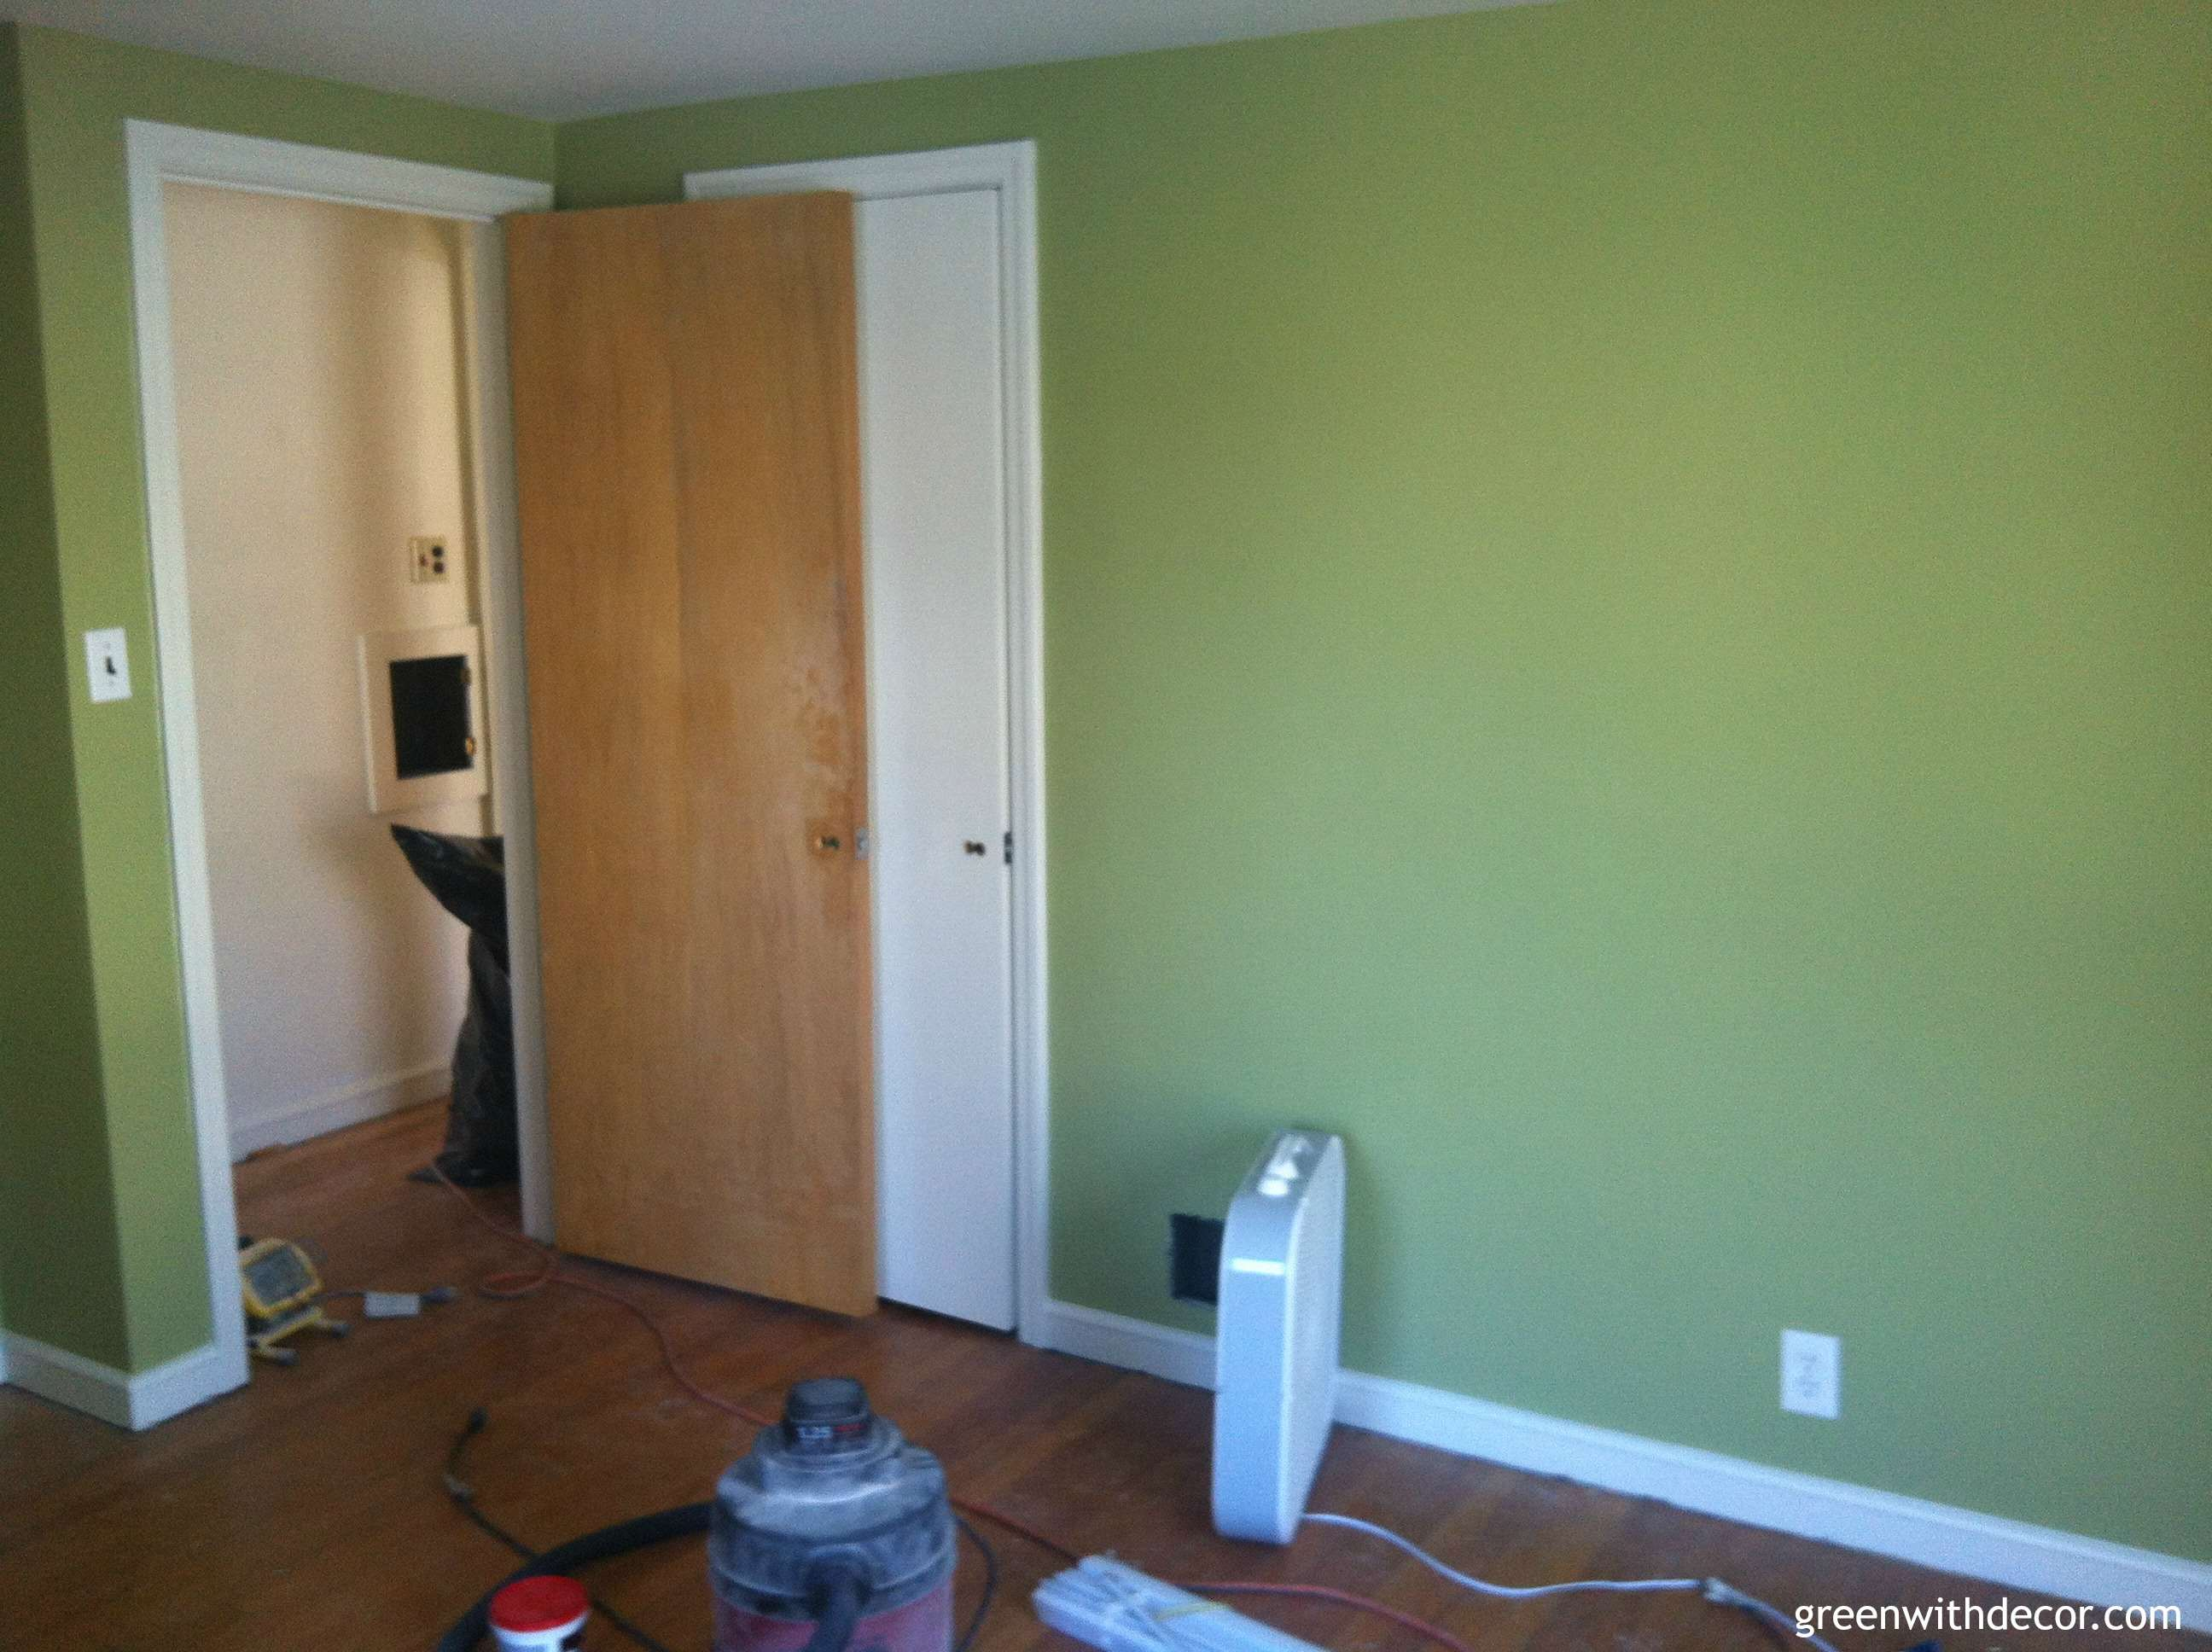 Green With Decor – Sherwin Williams Ryegrass green paint bedroom